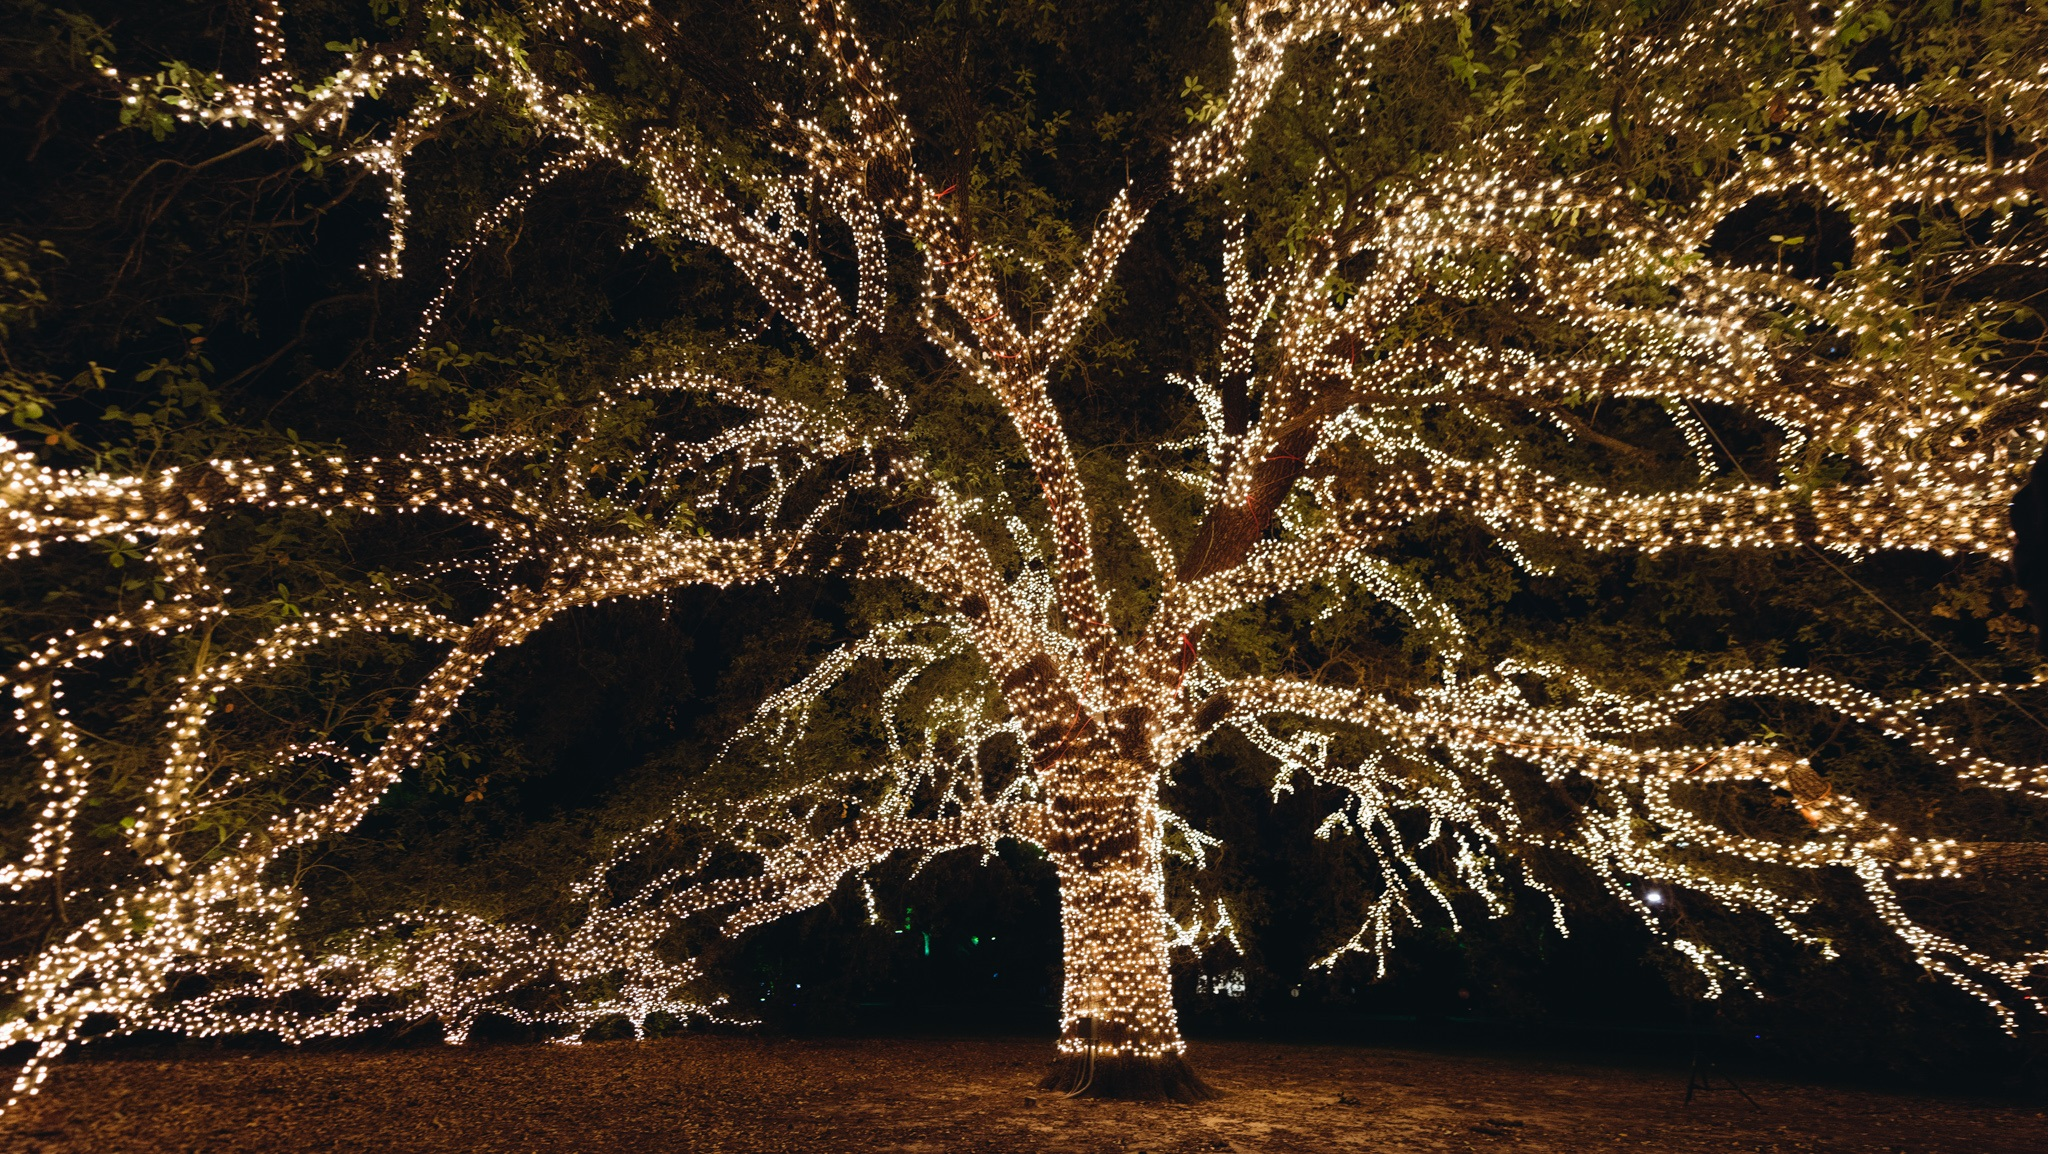 Celebrate The Holidays In Grand Style At The Houstonian